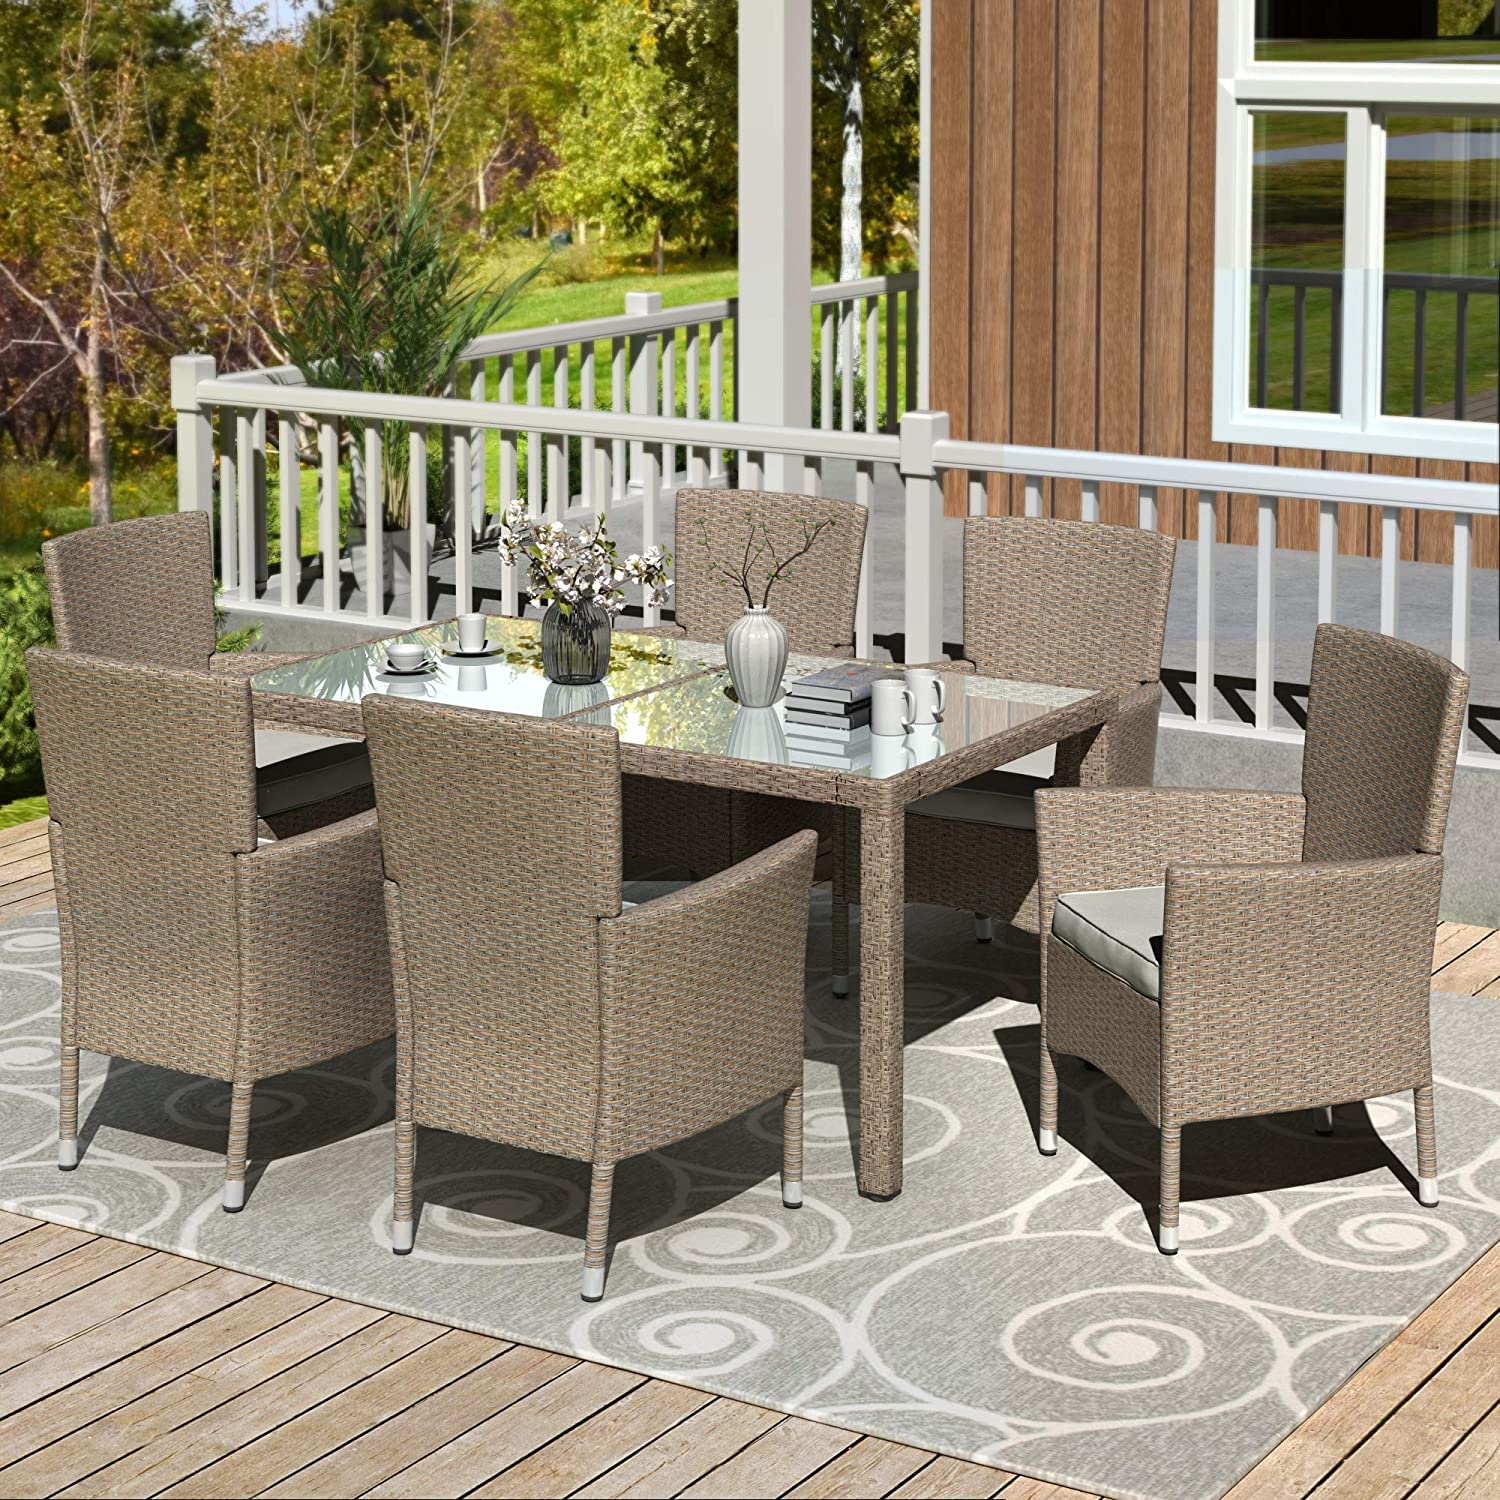 Harper & Bright Designs 7 Piece Patio Furniture Dining Set Outdoor Garden Wicker Rattan Dining Table Chairs Conversation Set with White Cushions (Beige-Brown)